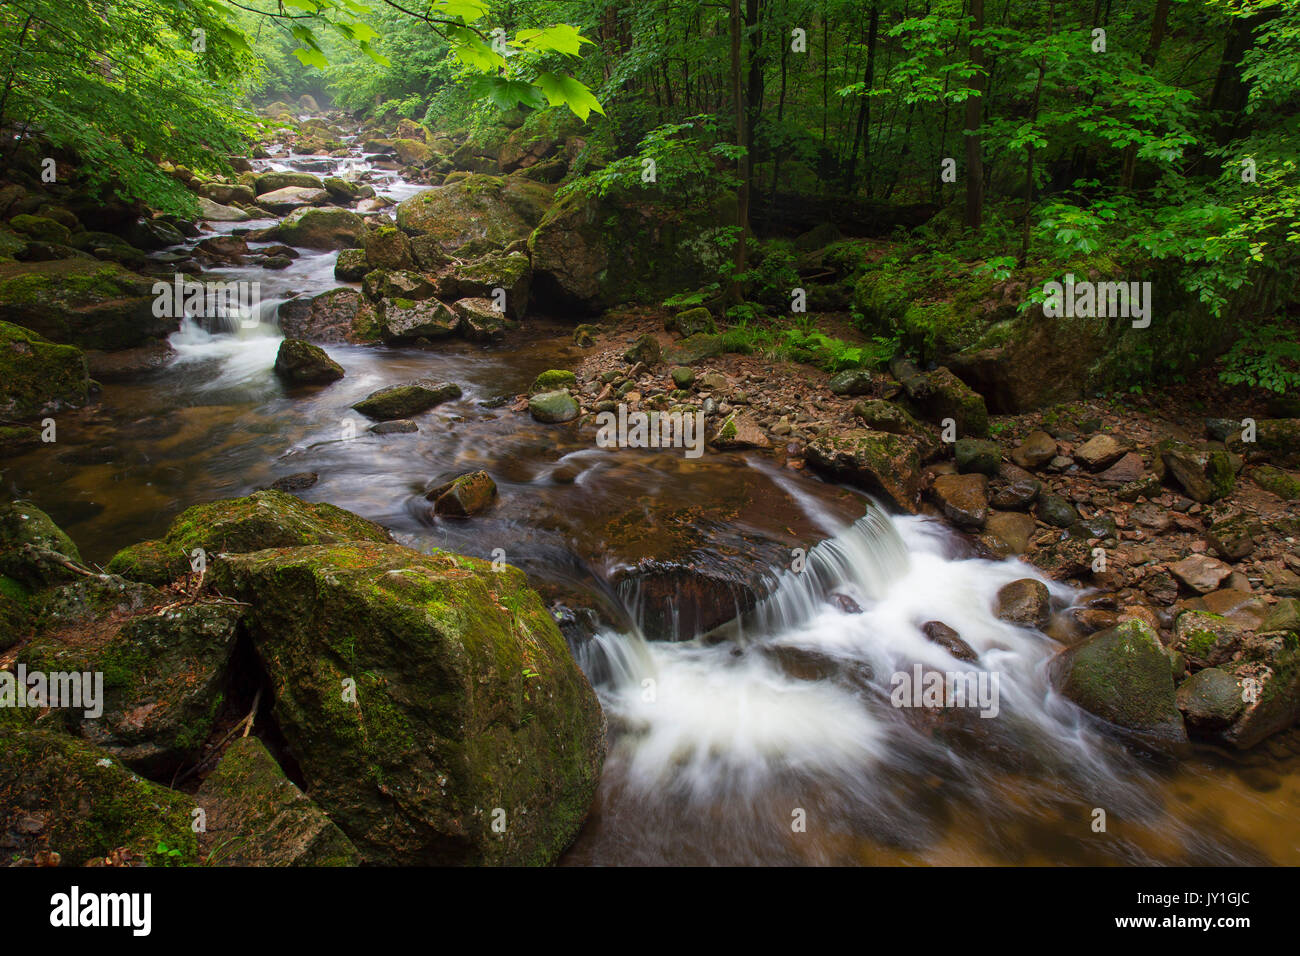 Ilse creek running in the Ilse valley / Ilsetal at the Harz National Park in summer, Saxony-Anhalt, Germany - Stock Image